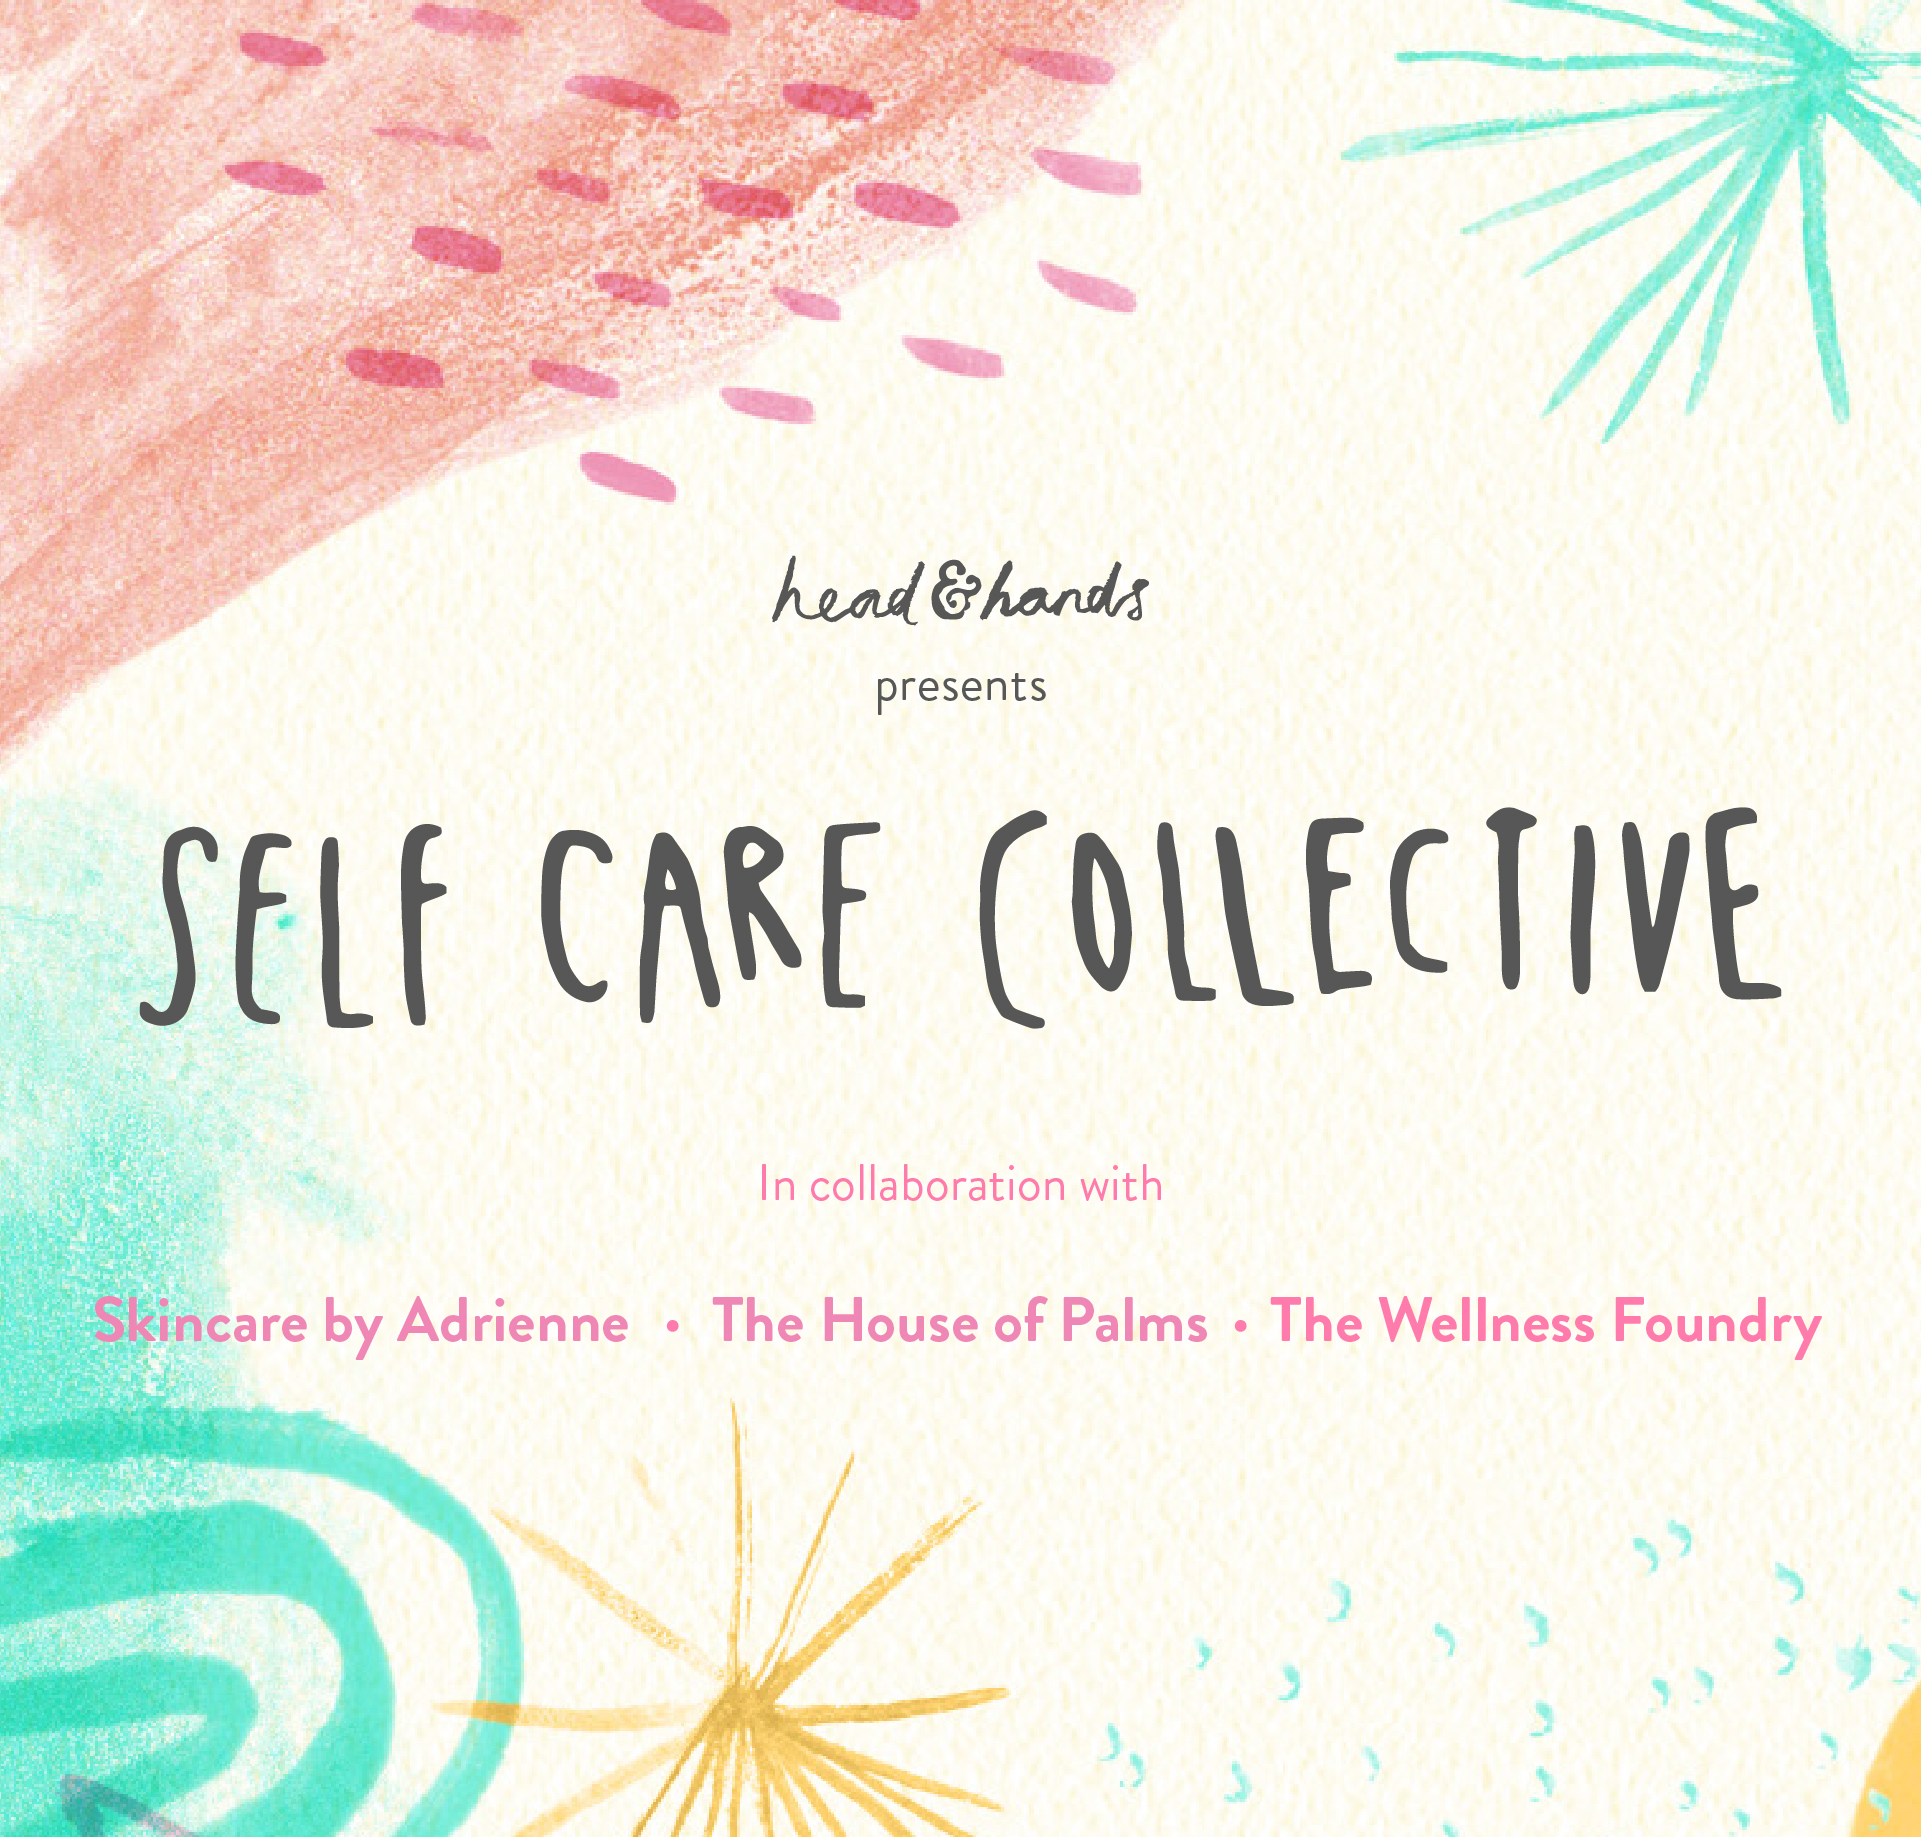 Self Love Saturday - We joined up with Head & Hands and Skincare by Adrienne for a relaxed self-care day of holistic treatments, a craft workshop & vegan snacks.